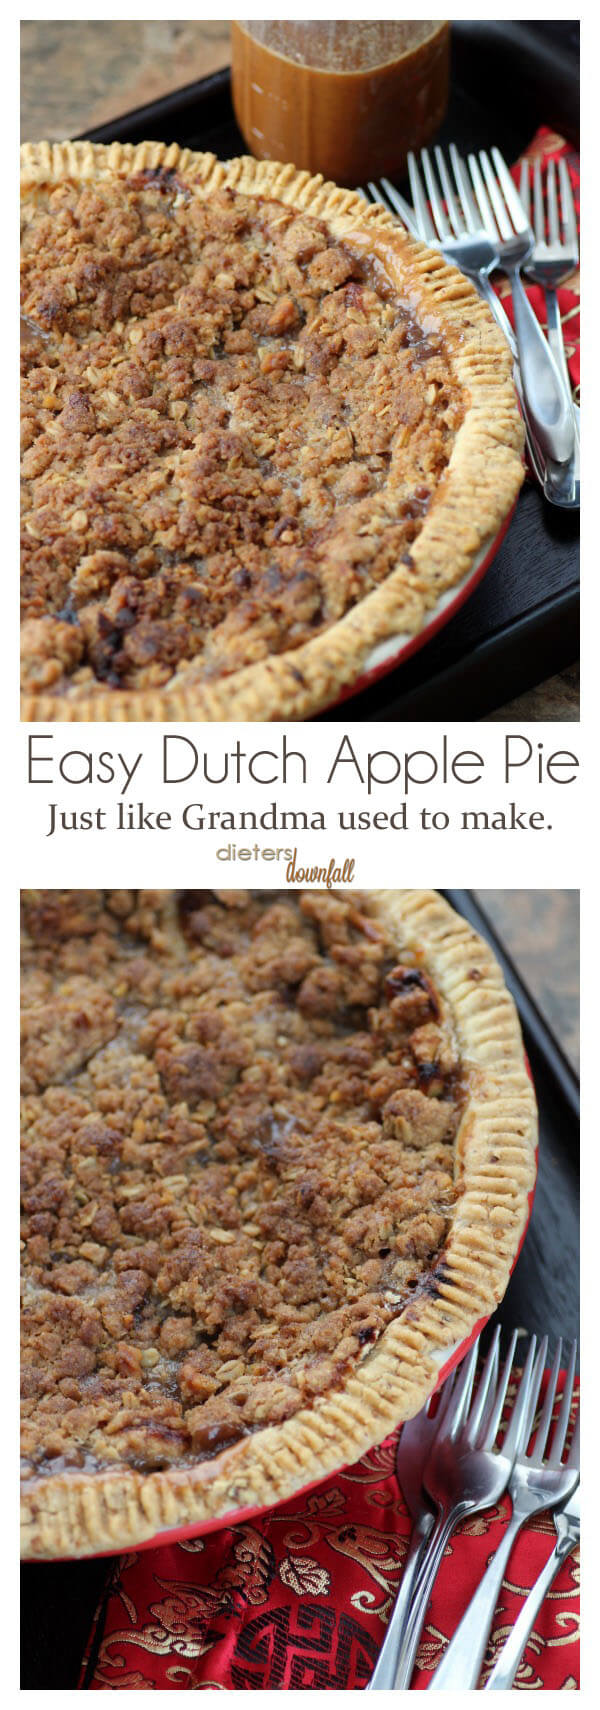 Easy Dutch Apple Pie Recipe. Flaky crust and crunchy topping. from #DietersDownfall